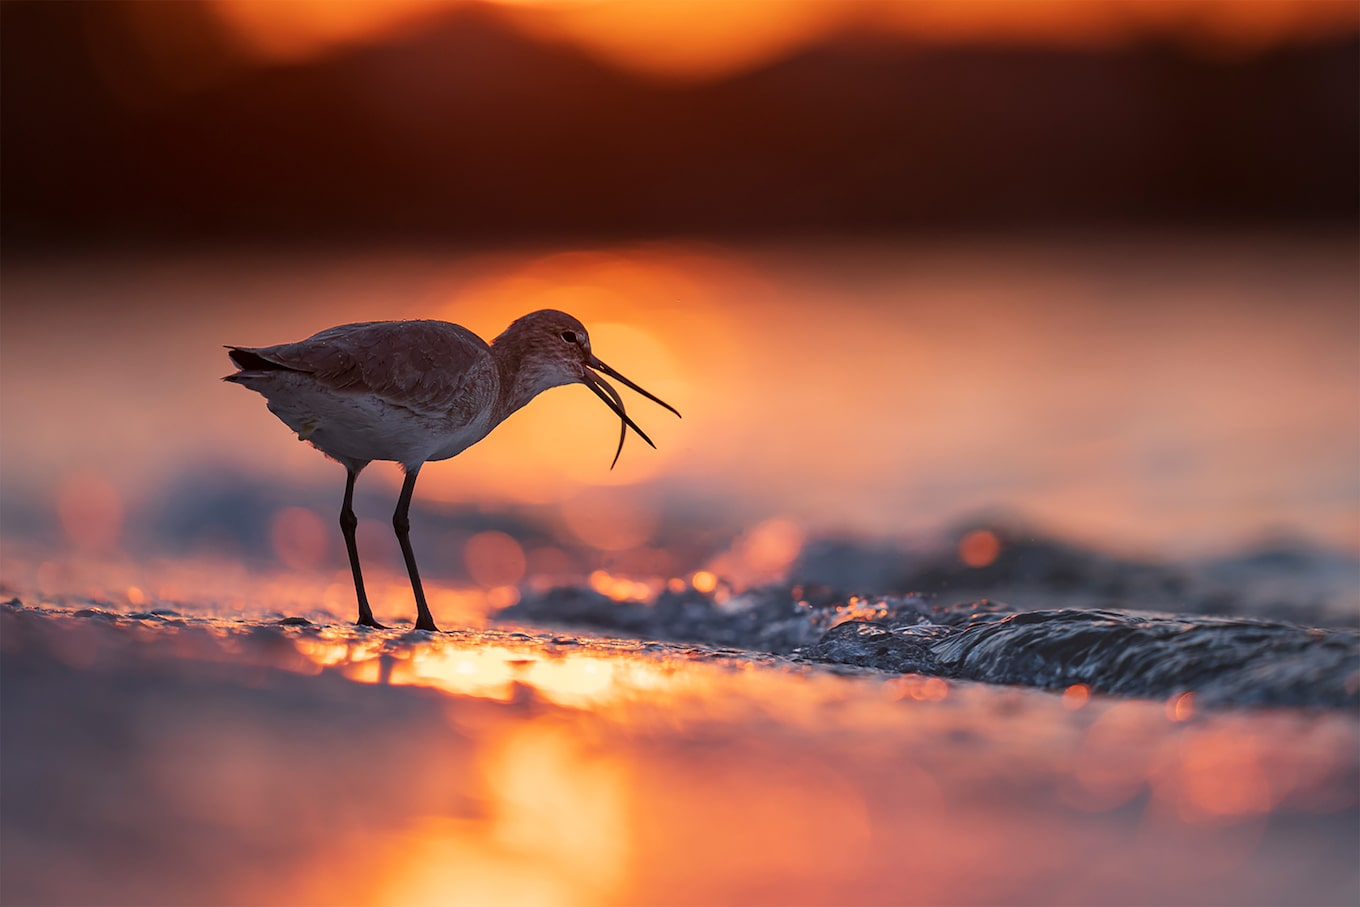 Andreas hemb sony alpha 7r3 bird with his tongue out standing in front of water